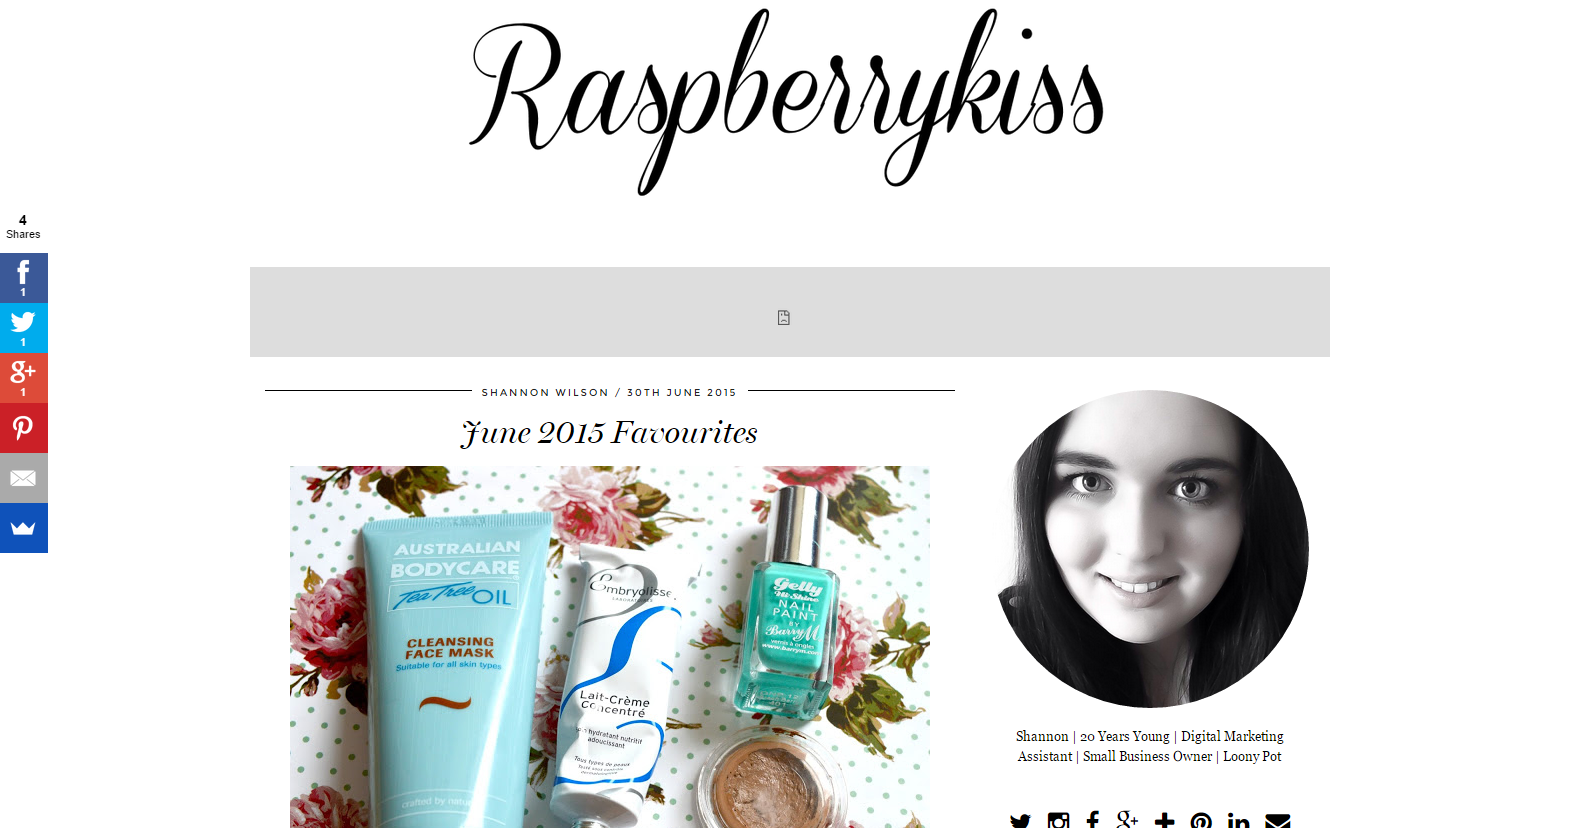 Veil Cover Cream Featured In Raspberrykiss June Favourites